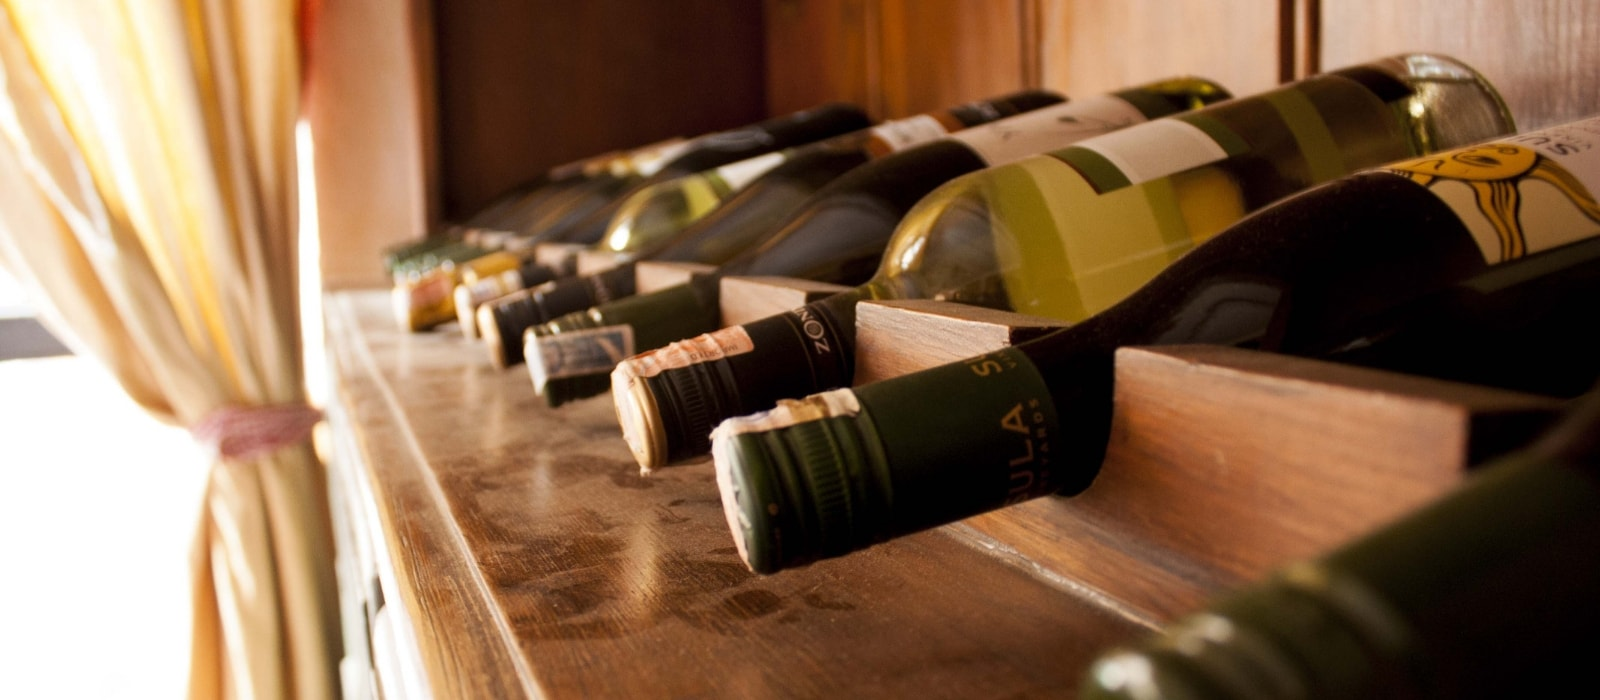 Where to Go Wine Tasting in Orlando| Places to Go Wine Tasting in Florida| Wine Tasting in Orlando| Best Wine Tasting Rooms in Orlando| Best Wine Tasting Rooms in Florida| Where to Go Wine Tasting in Florida| #florida #wine #orlandowine #winetasting